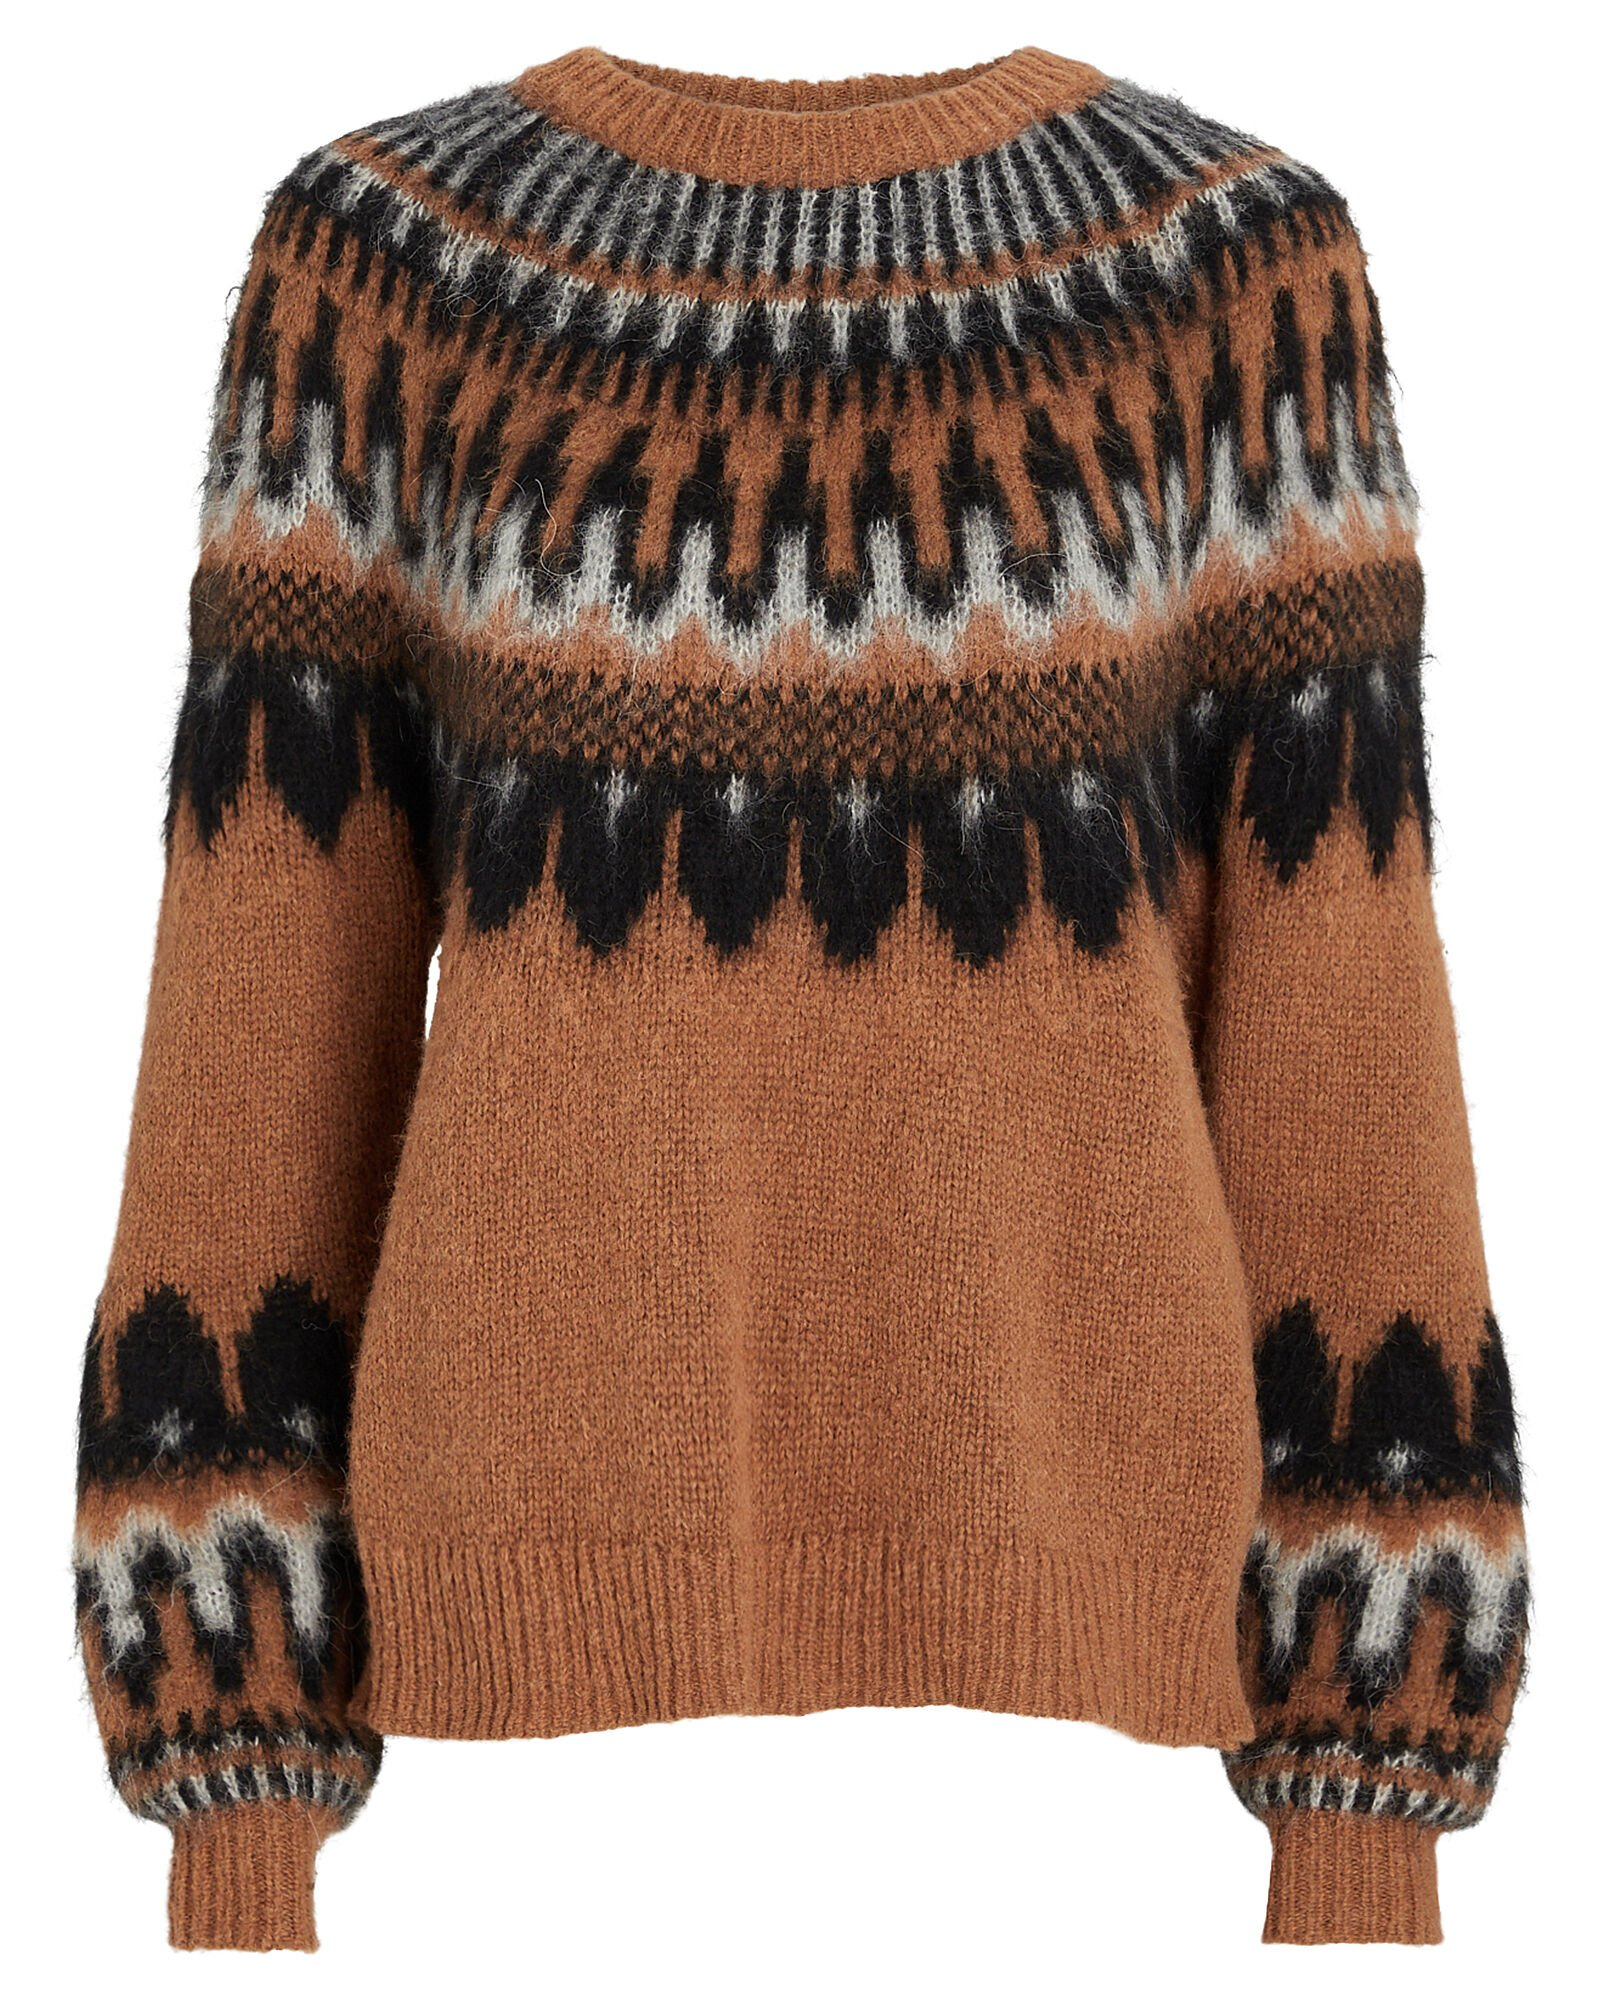 Hollis Fair Isle Sweater, , hi-res